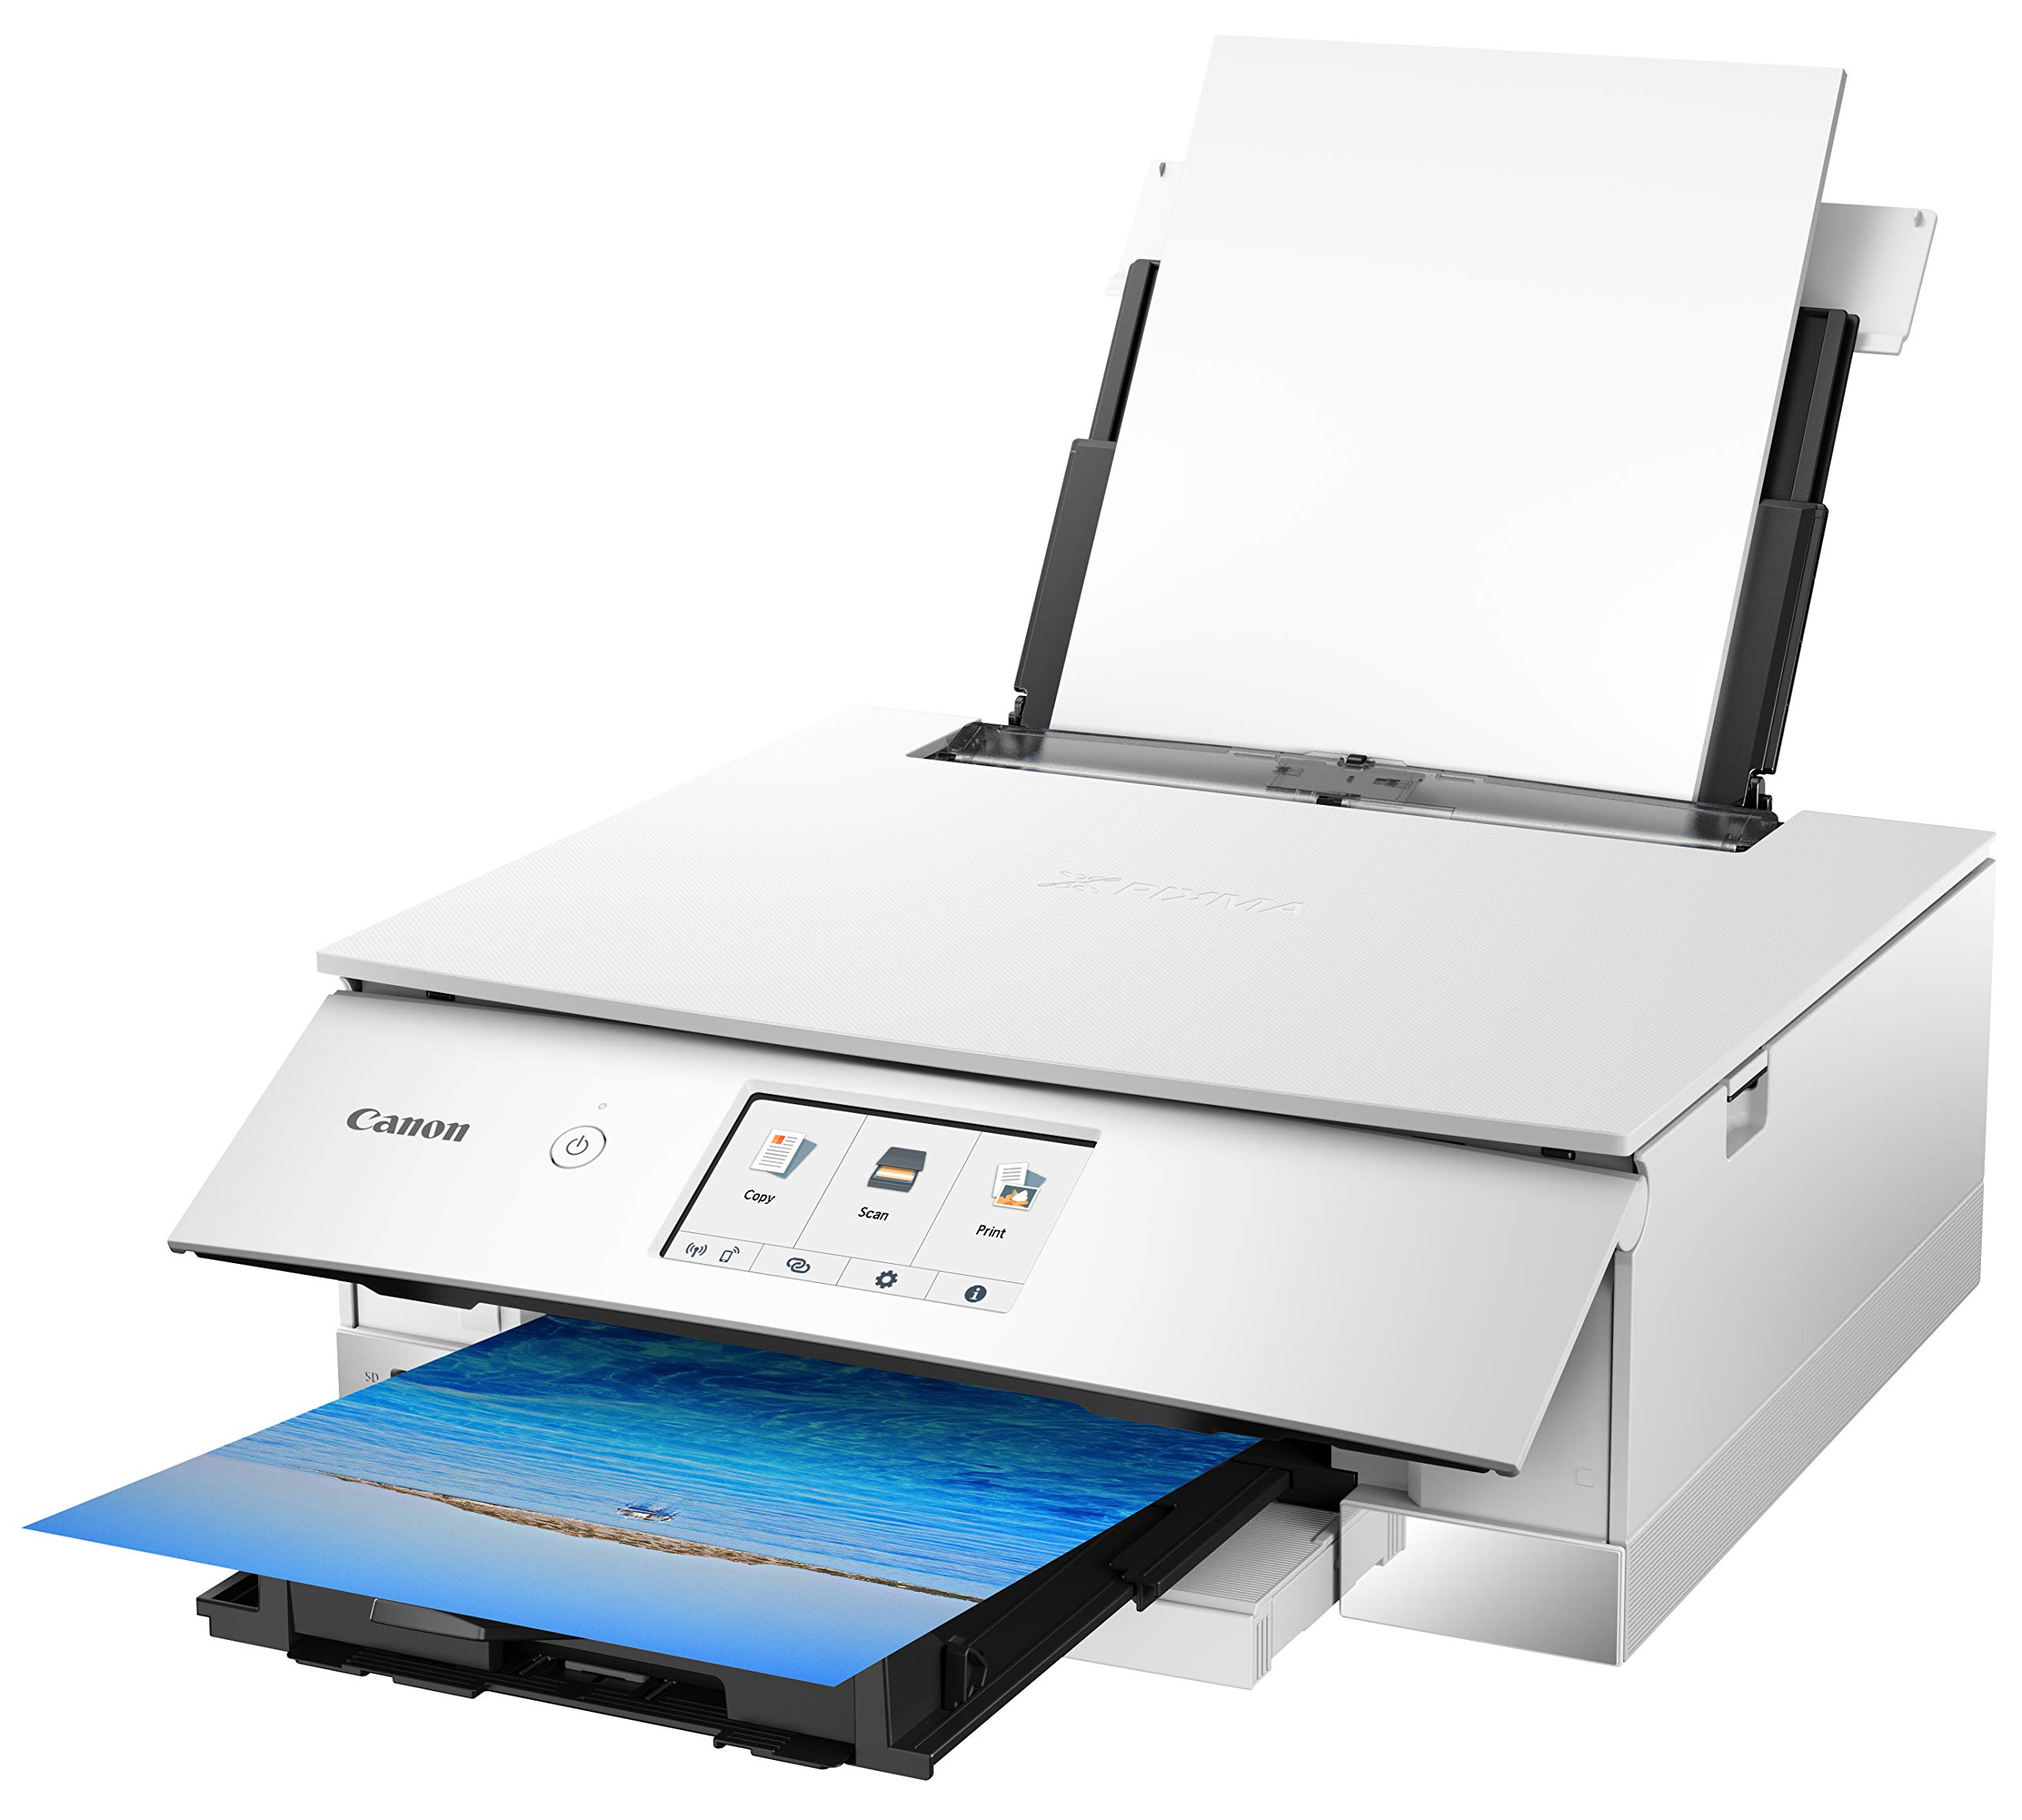 Canon TS8220 Wireless All in One Photo Printer with Scannier and Copier, Mobile Printing, White by Canon (Image #4)